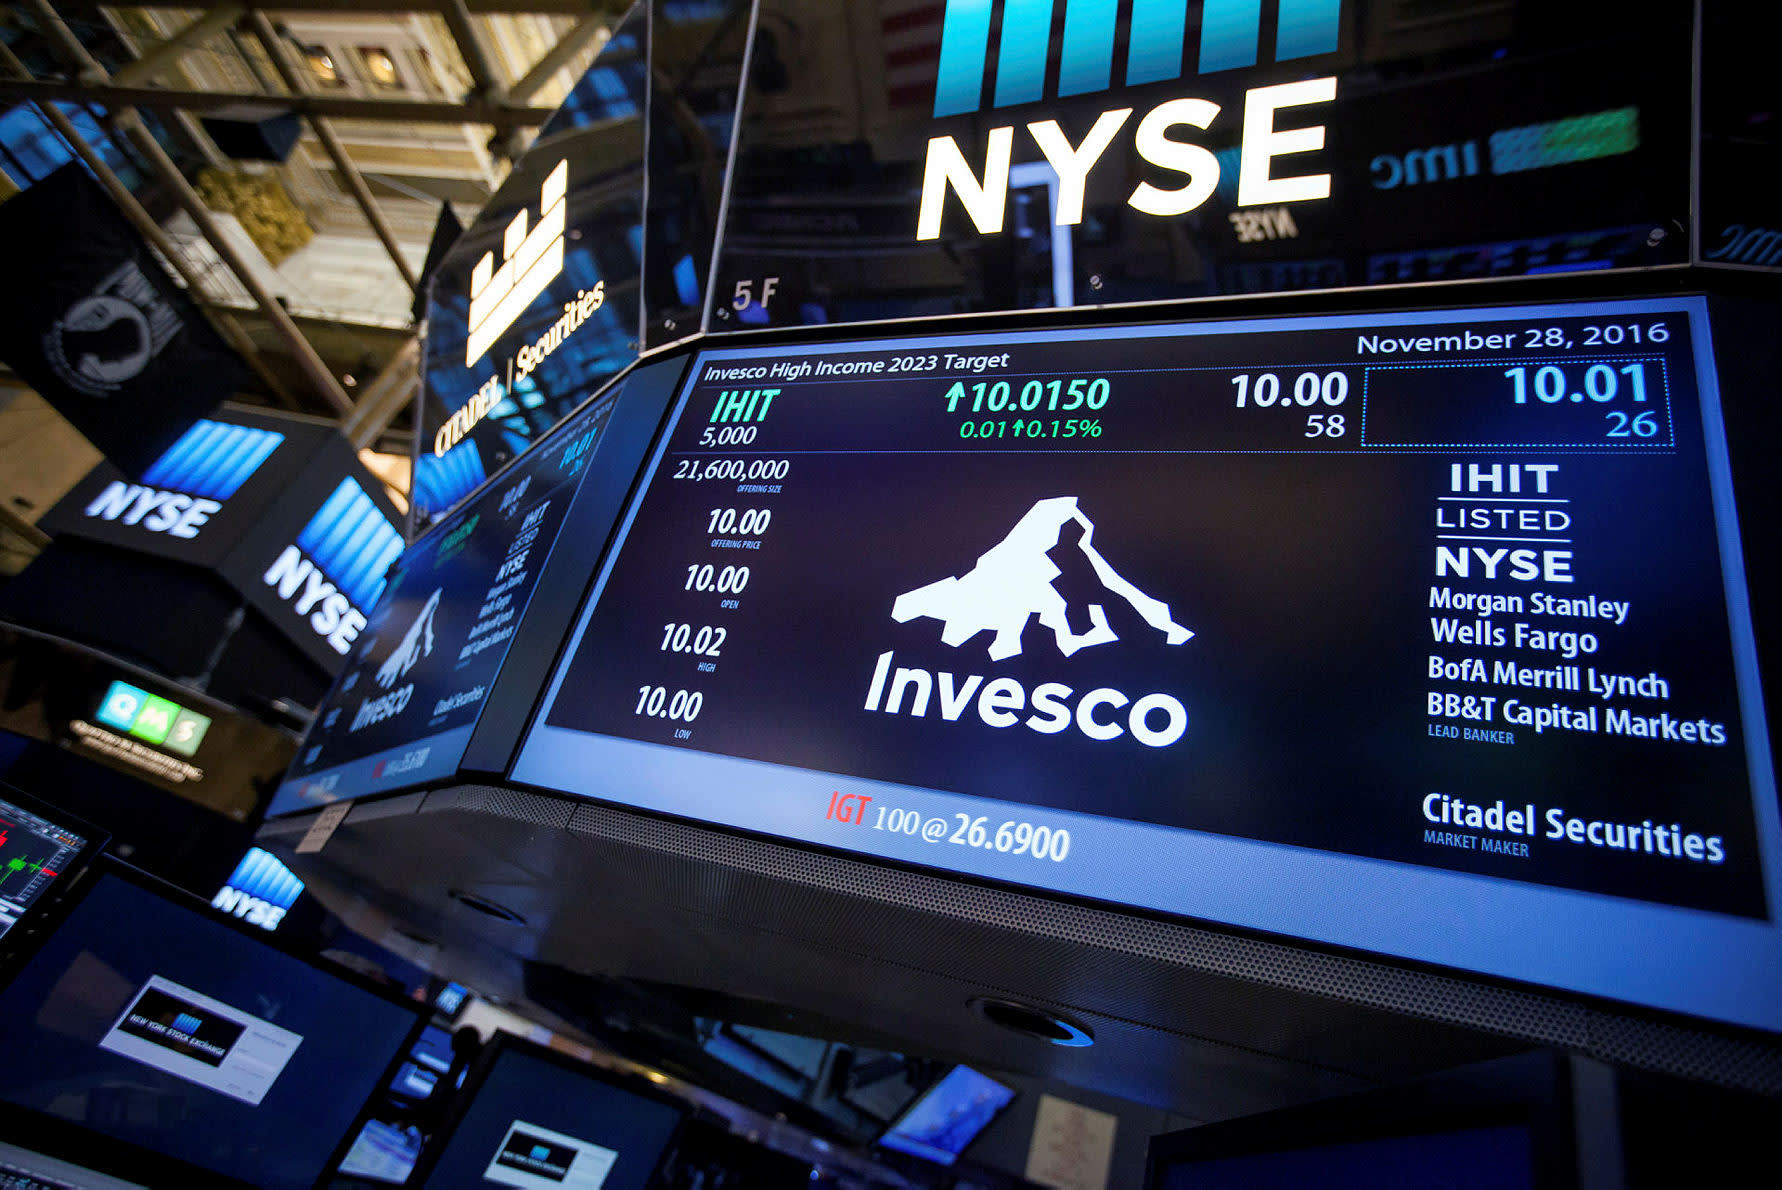 Investors pull nearly £1bn from Invesco